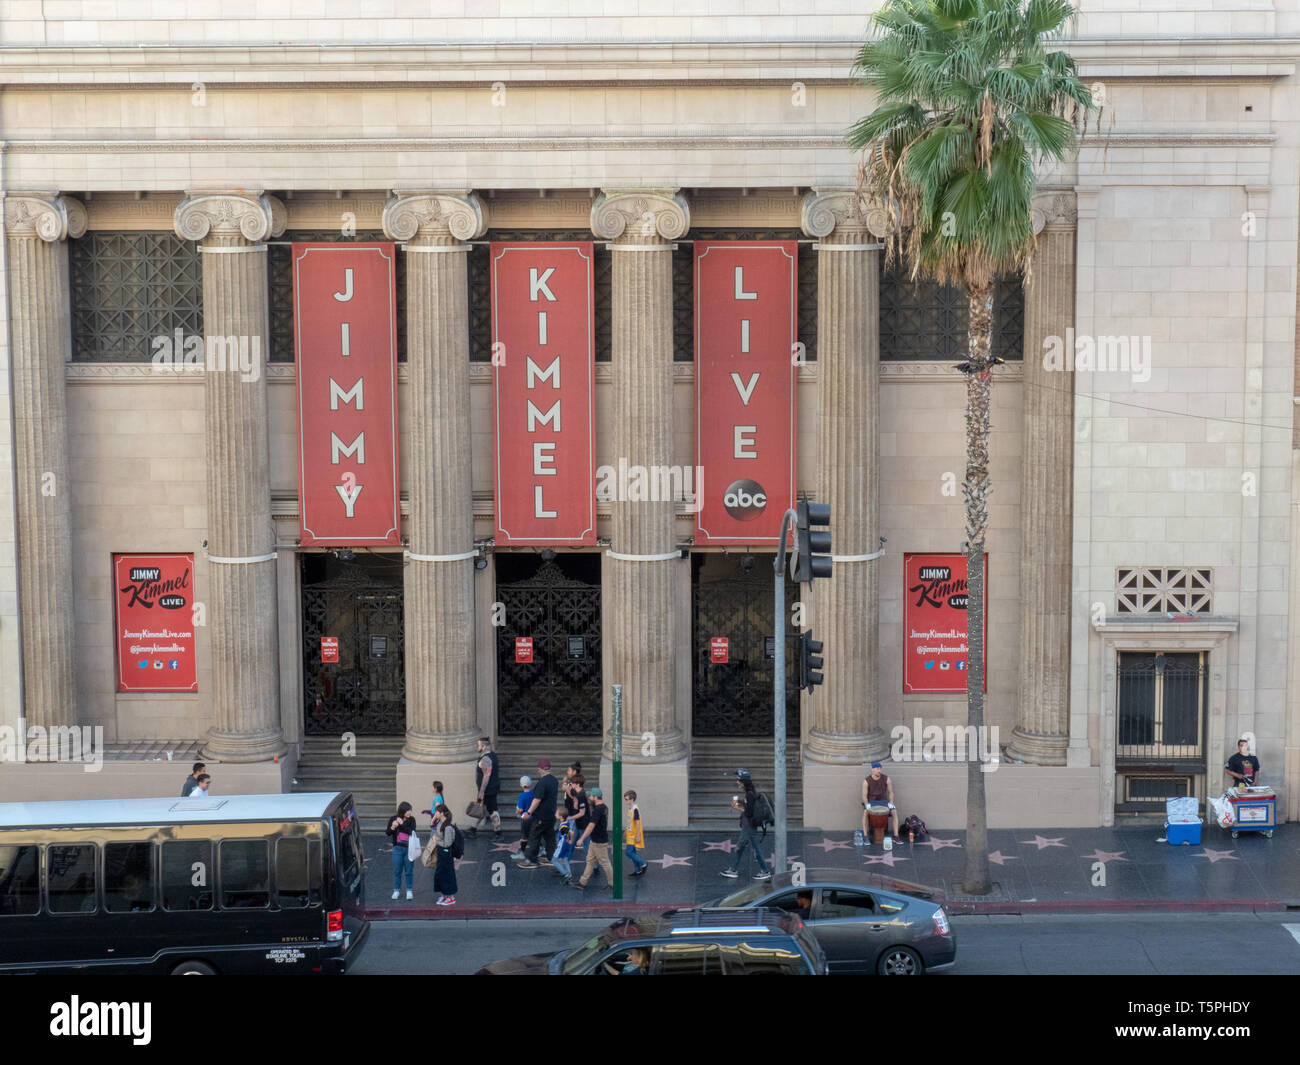 https://c8.alamy.com/comp/T5PHDY/jimmy-kimmel-live-filming-location-at-the-hollywood-masonic-temple-T5PHDY.jpg